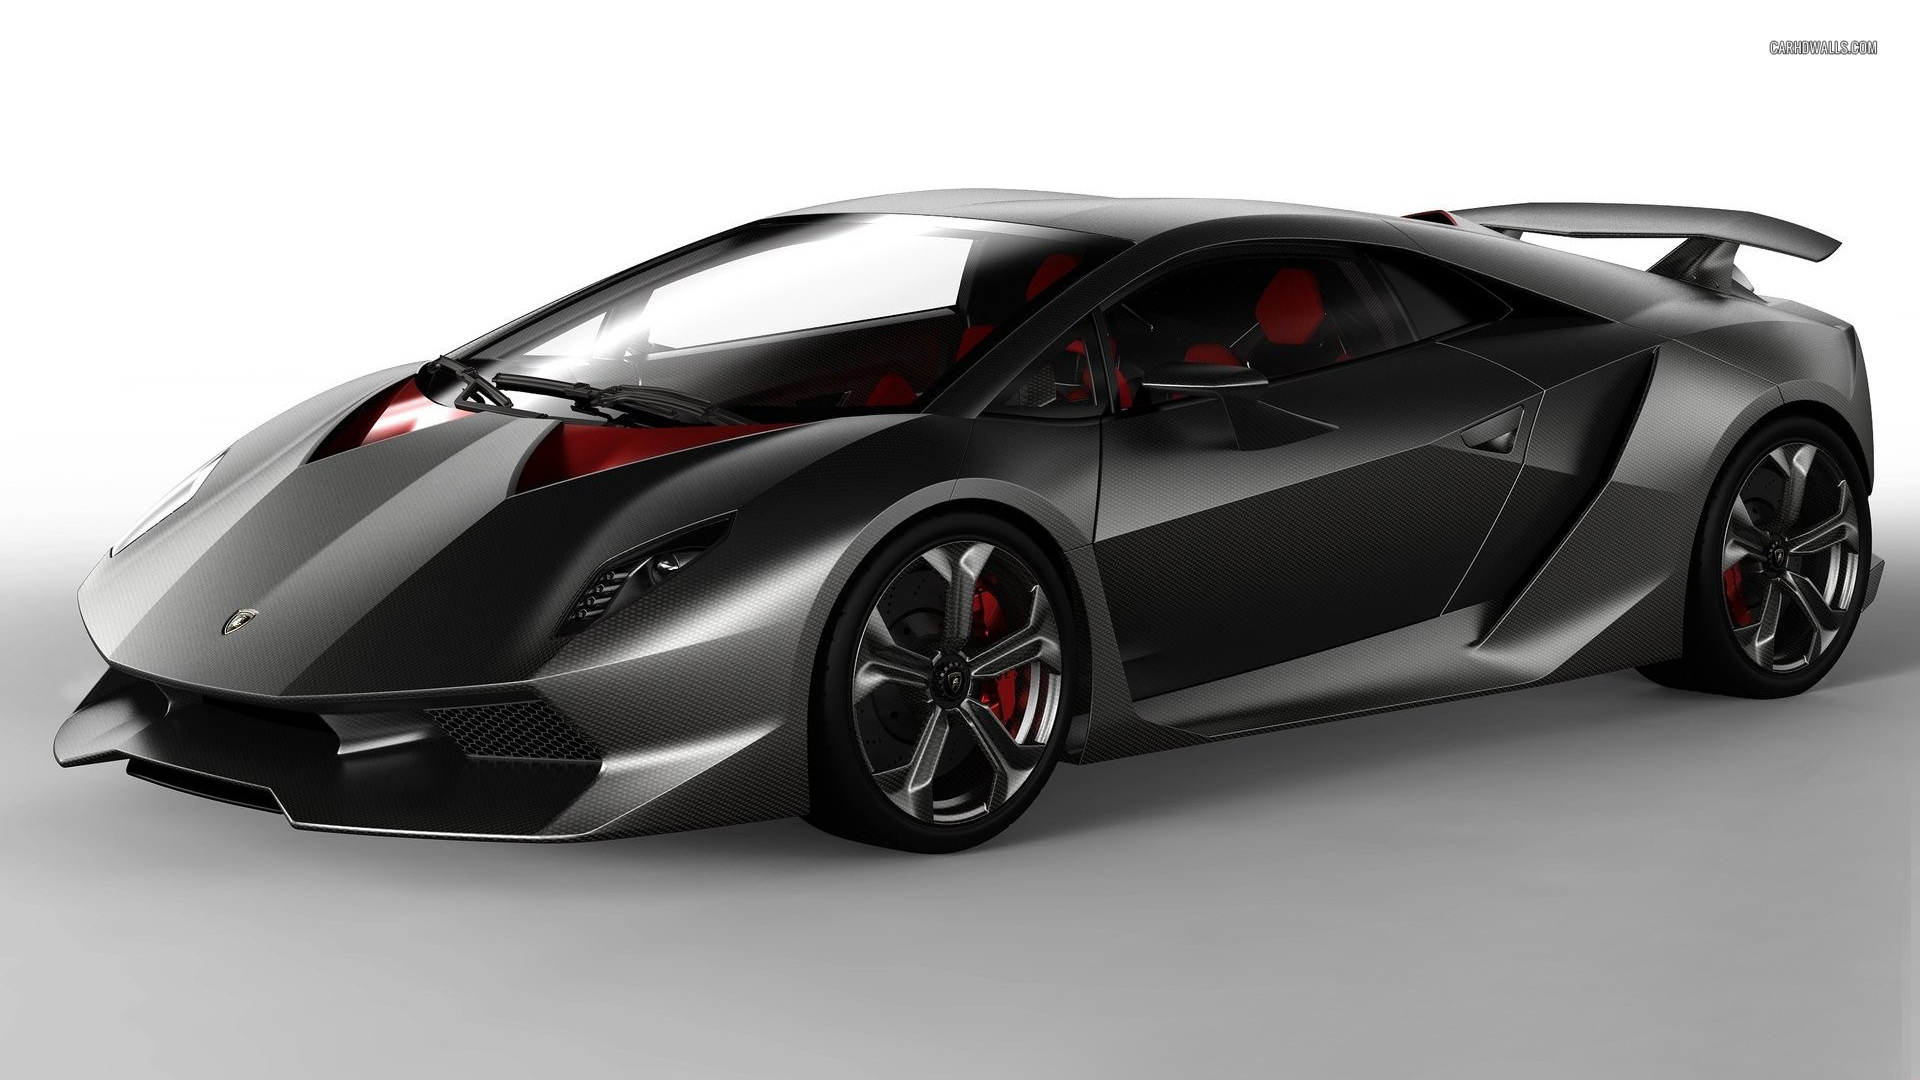 2019 Lamborghini Murcielago Sketch photo - 2